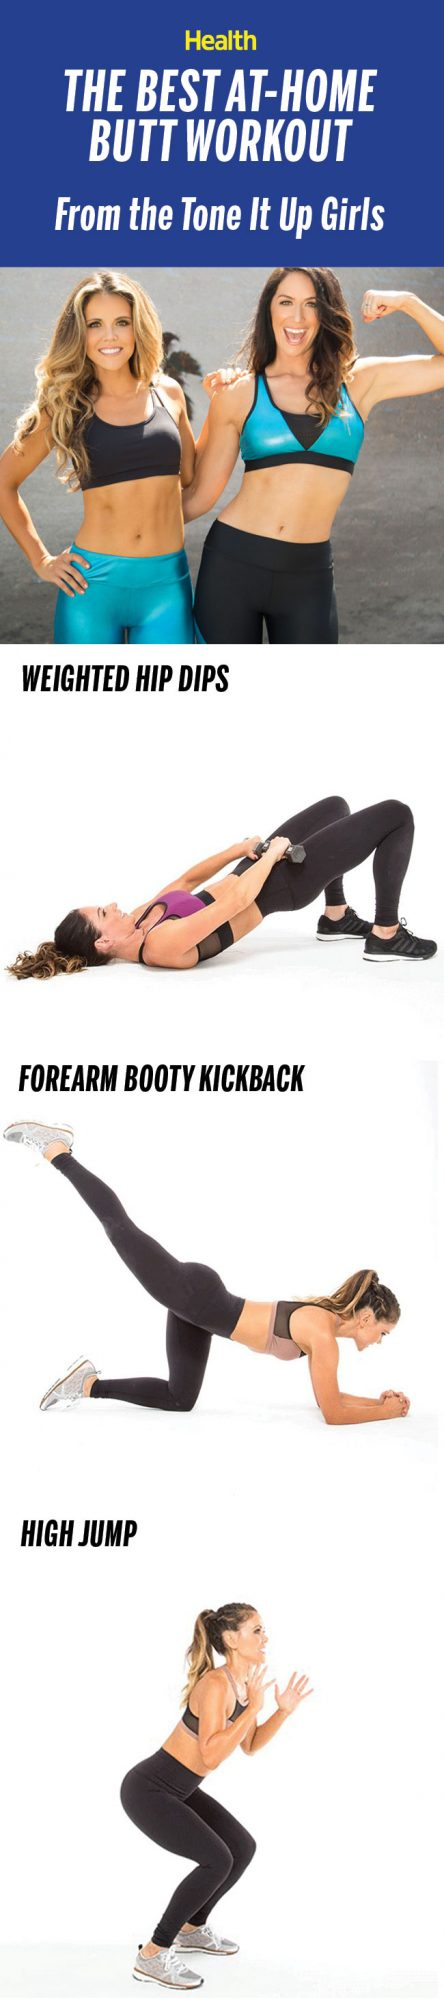 tone-it-up-full-workout